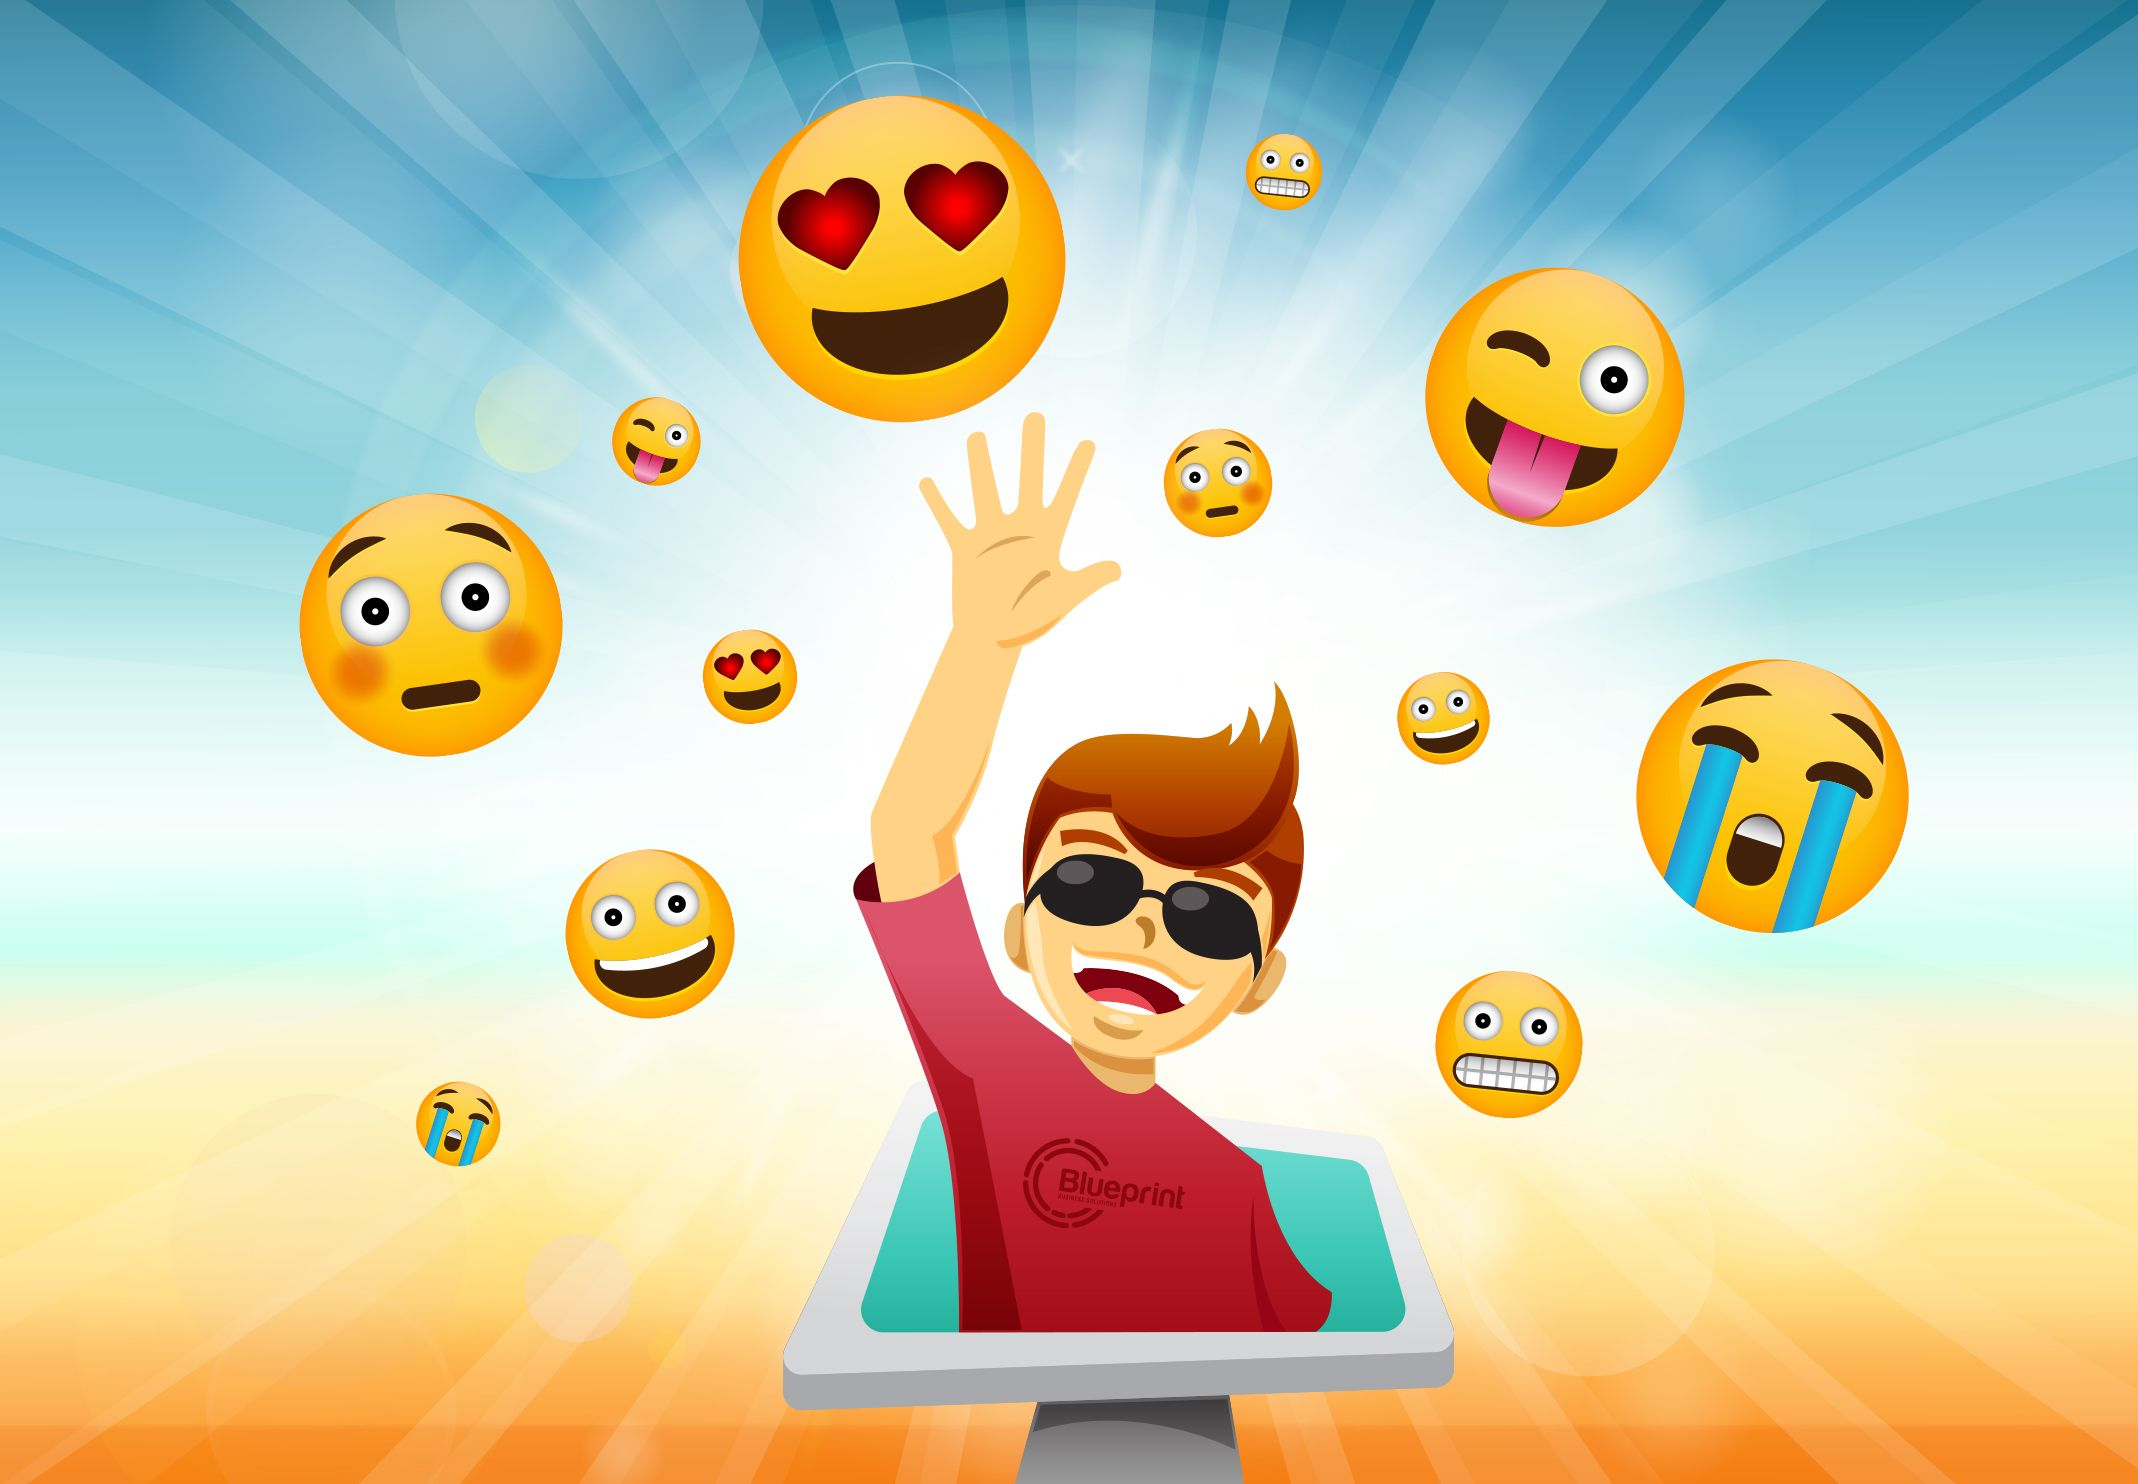 Emoji for social media marketing blueprint business solutions corp emoji for social media marketing blueprint business solutions corp malvernweather Images